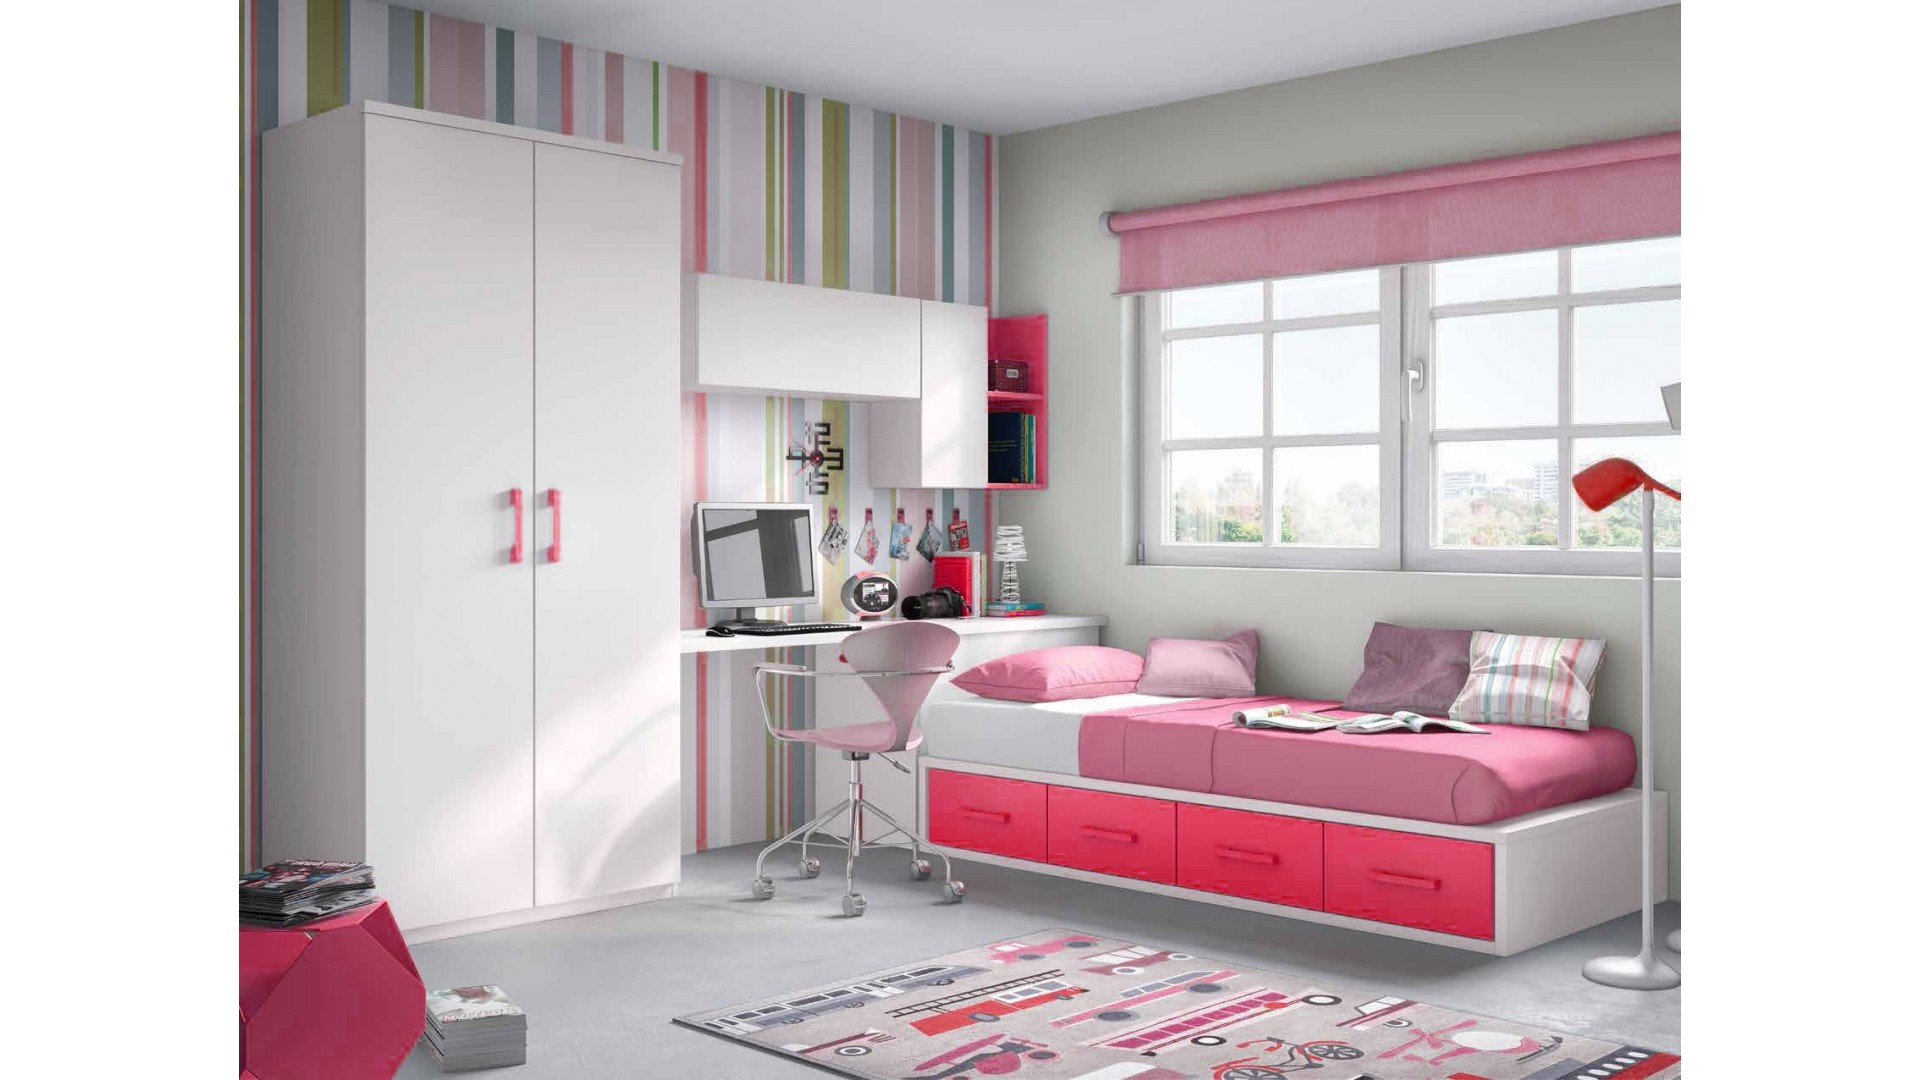 Awesome chambre double fille ado gallery for Chambre pour fille